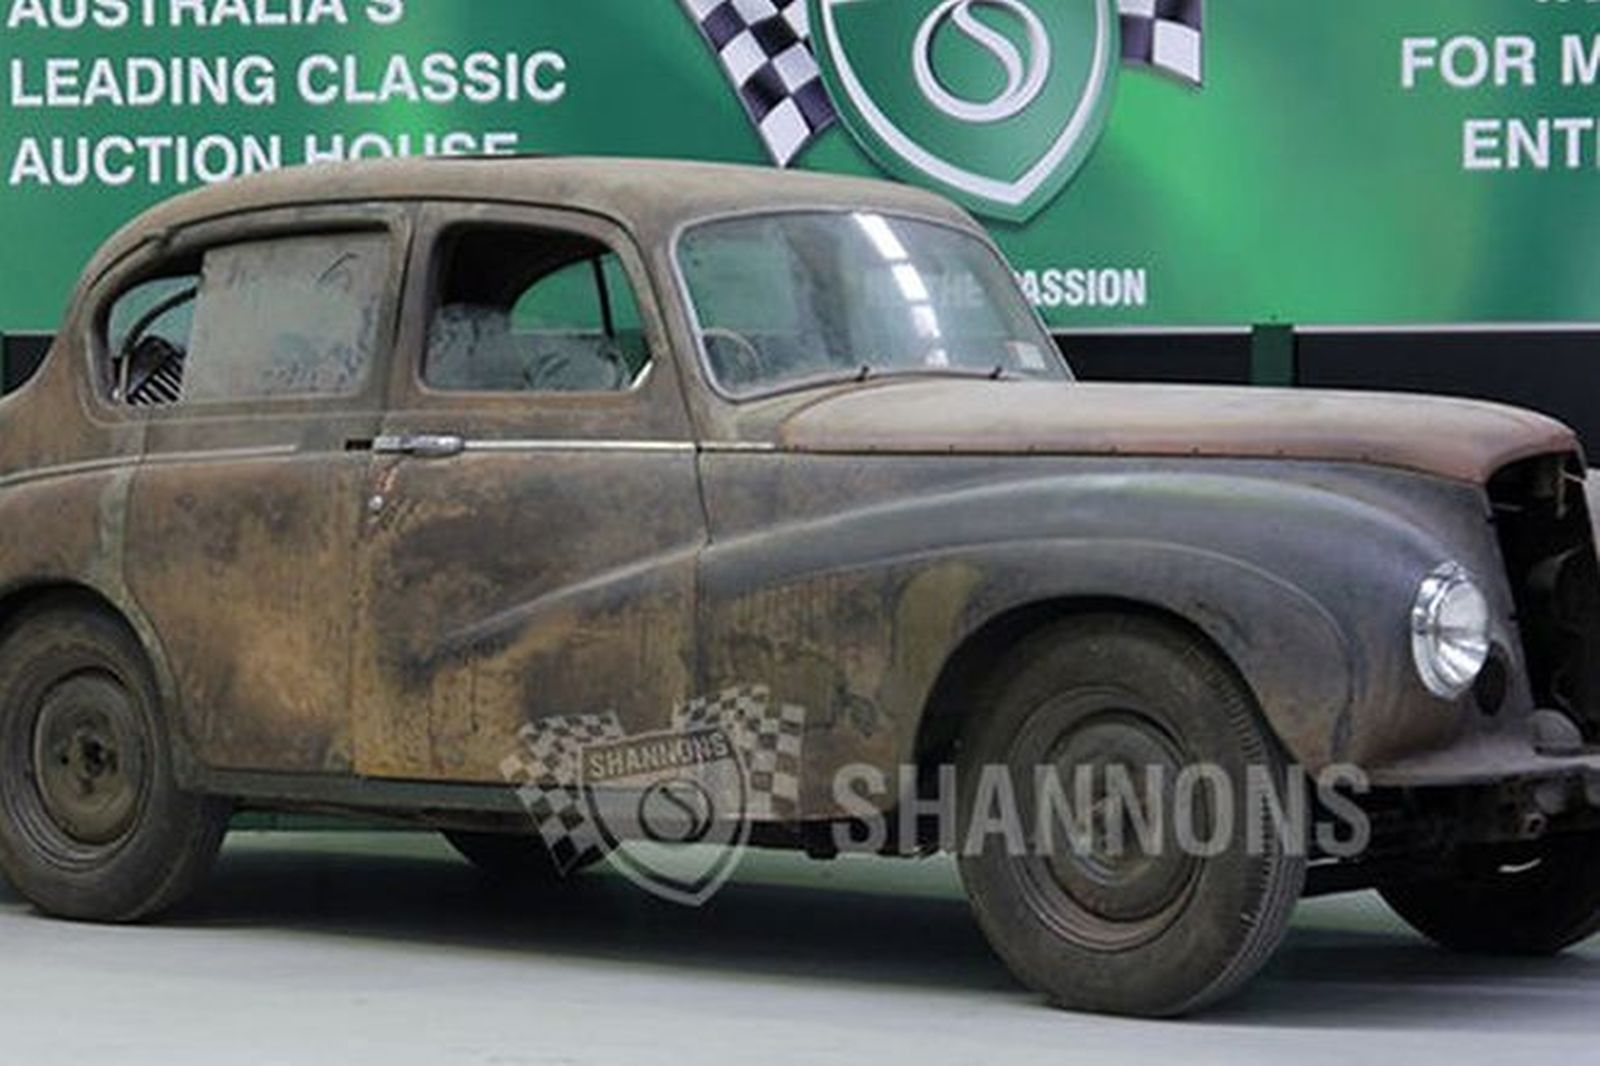 Generous Old Cars For Sale Australia Photos - Classic Cars Ideas ...